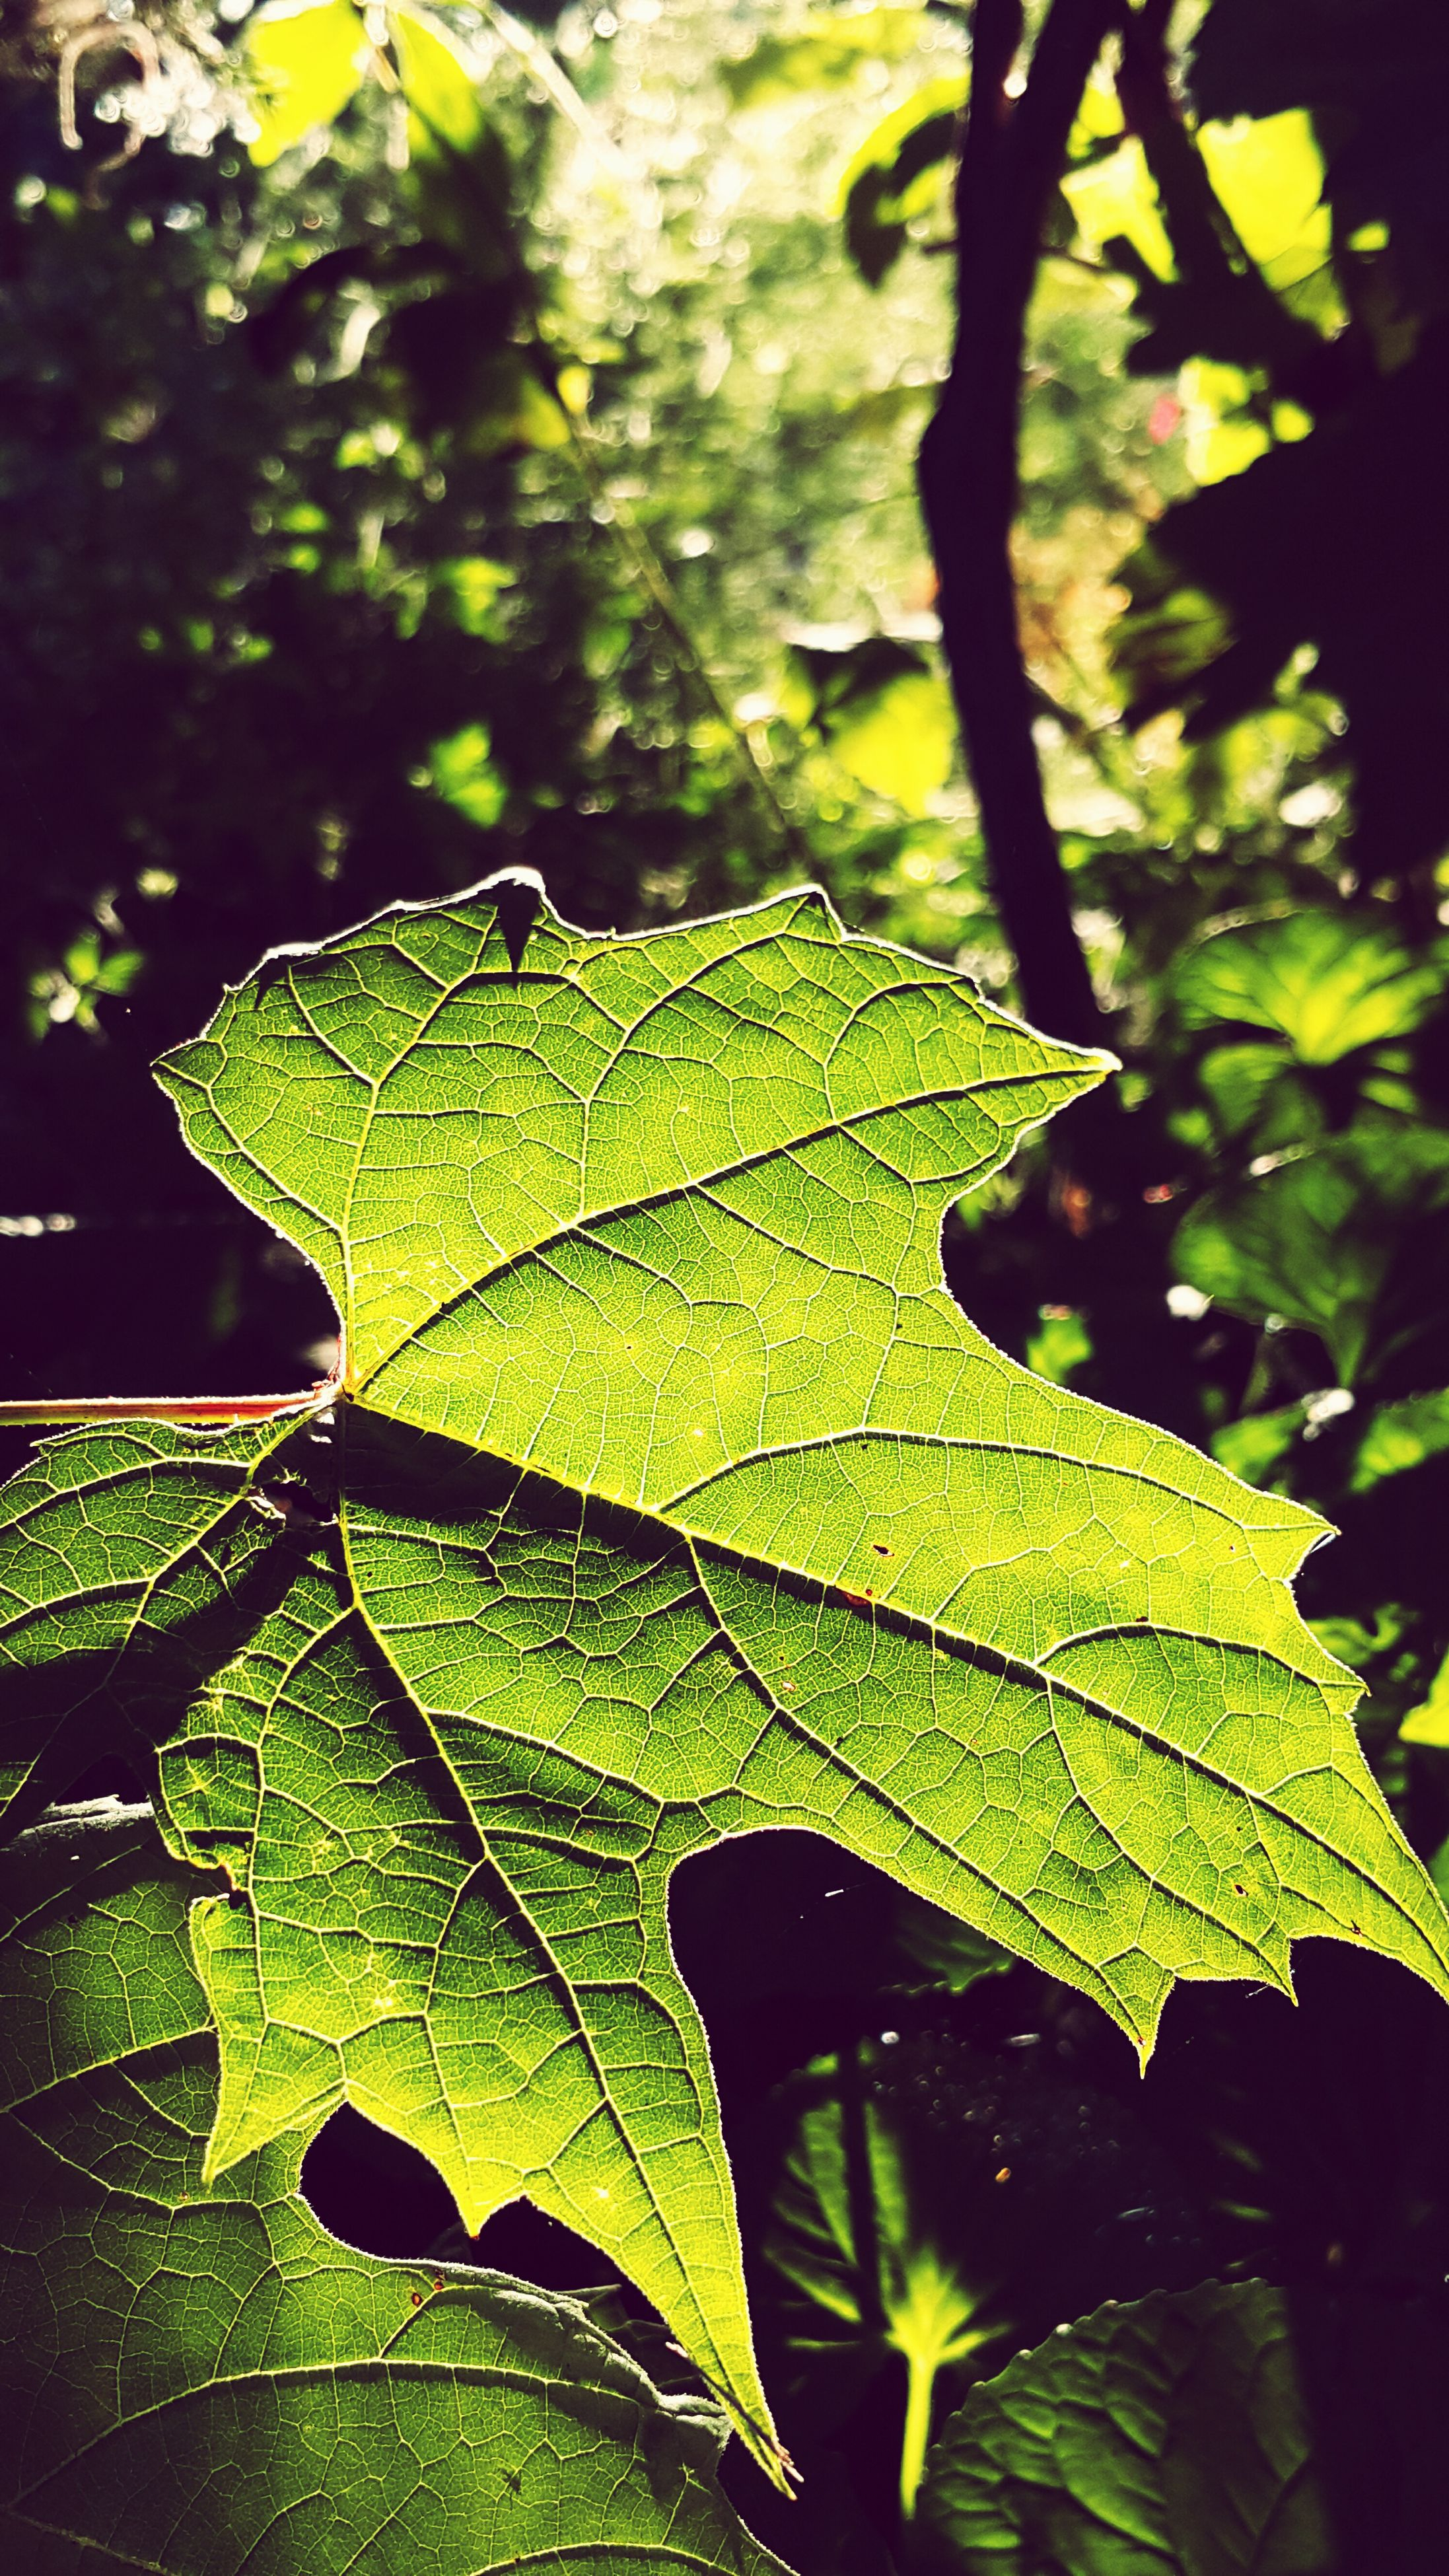 leaf, leaf vein, green color, close-up, growth, leaves, nature, focus on foreground, plant, sunlight, natural pattern, branch, outdoors, beauty in nature, day, no people, one animal, green, selective focus, tranquility